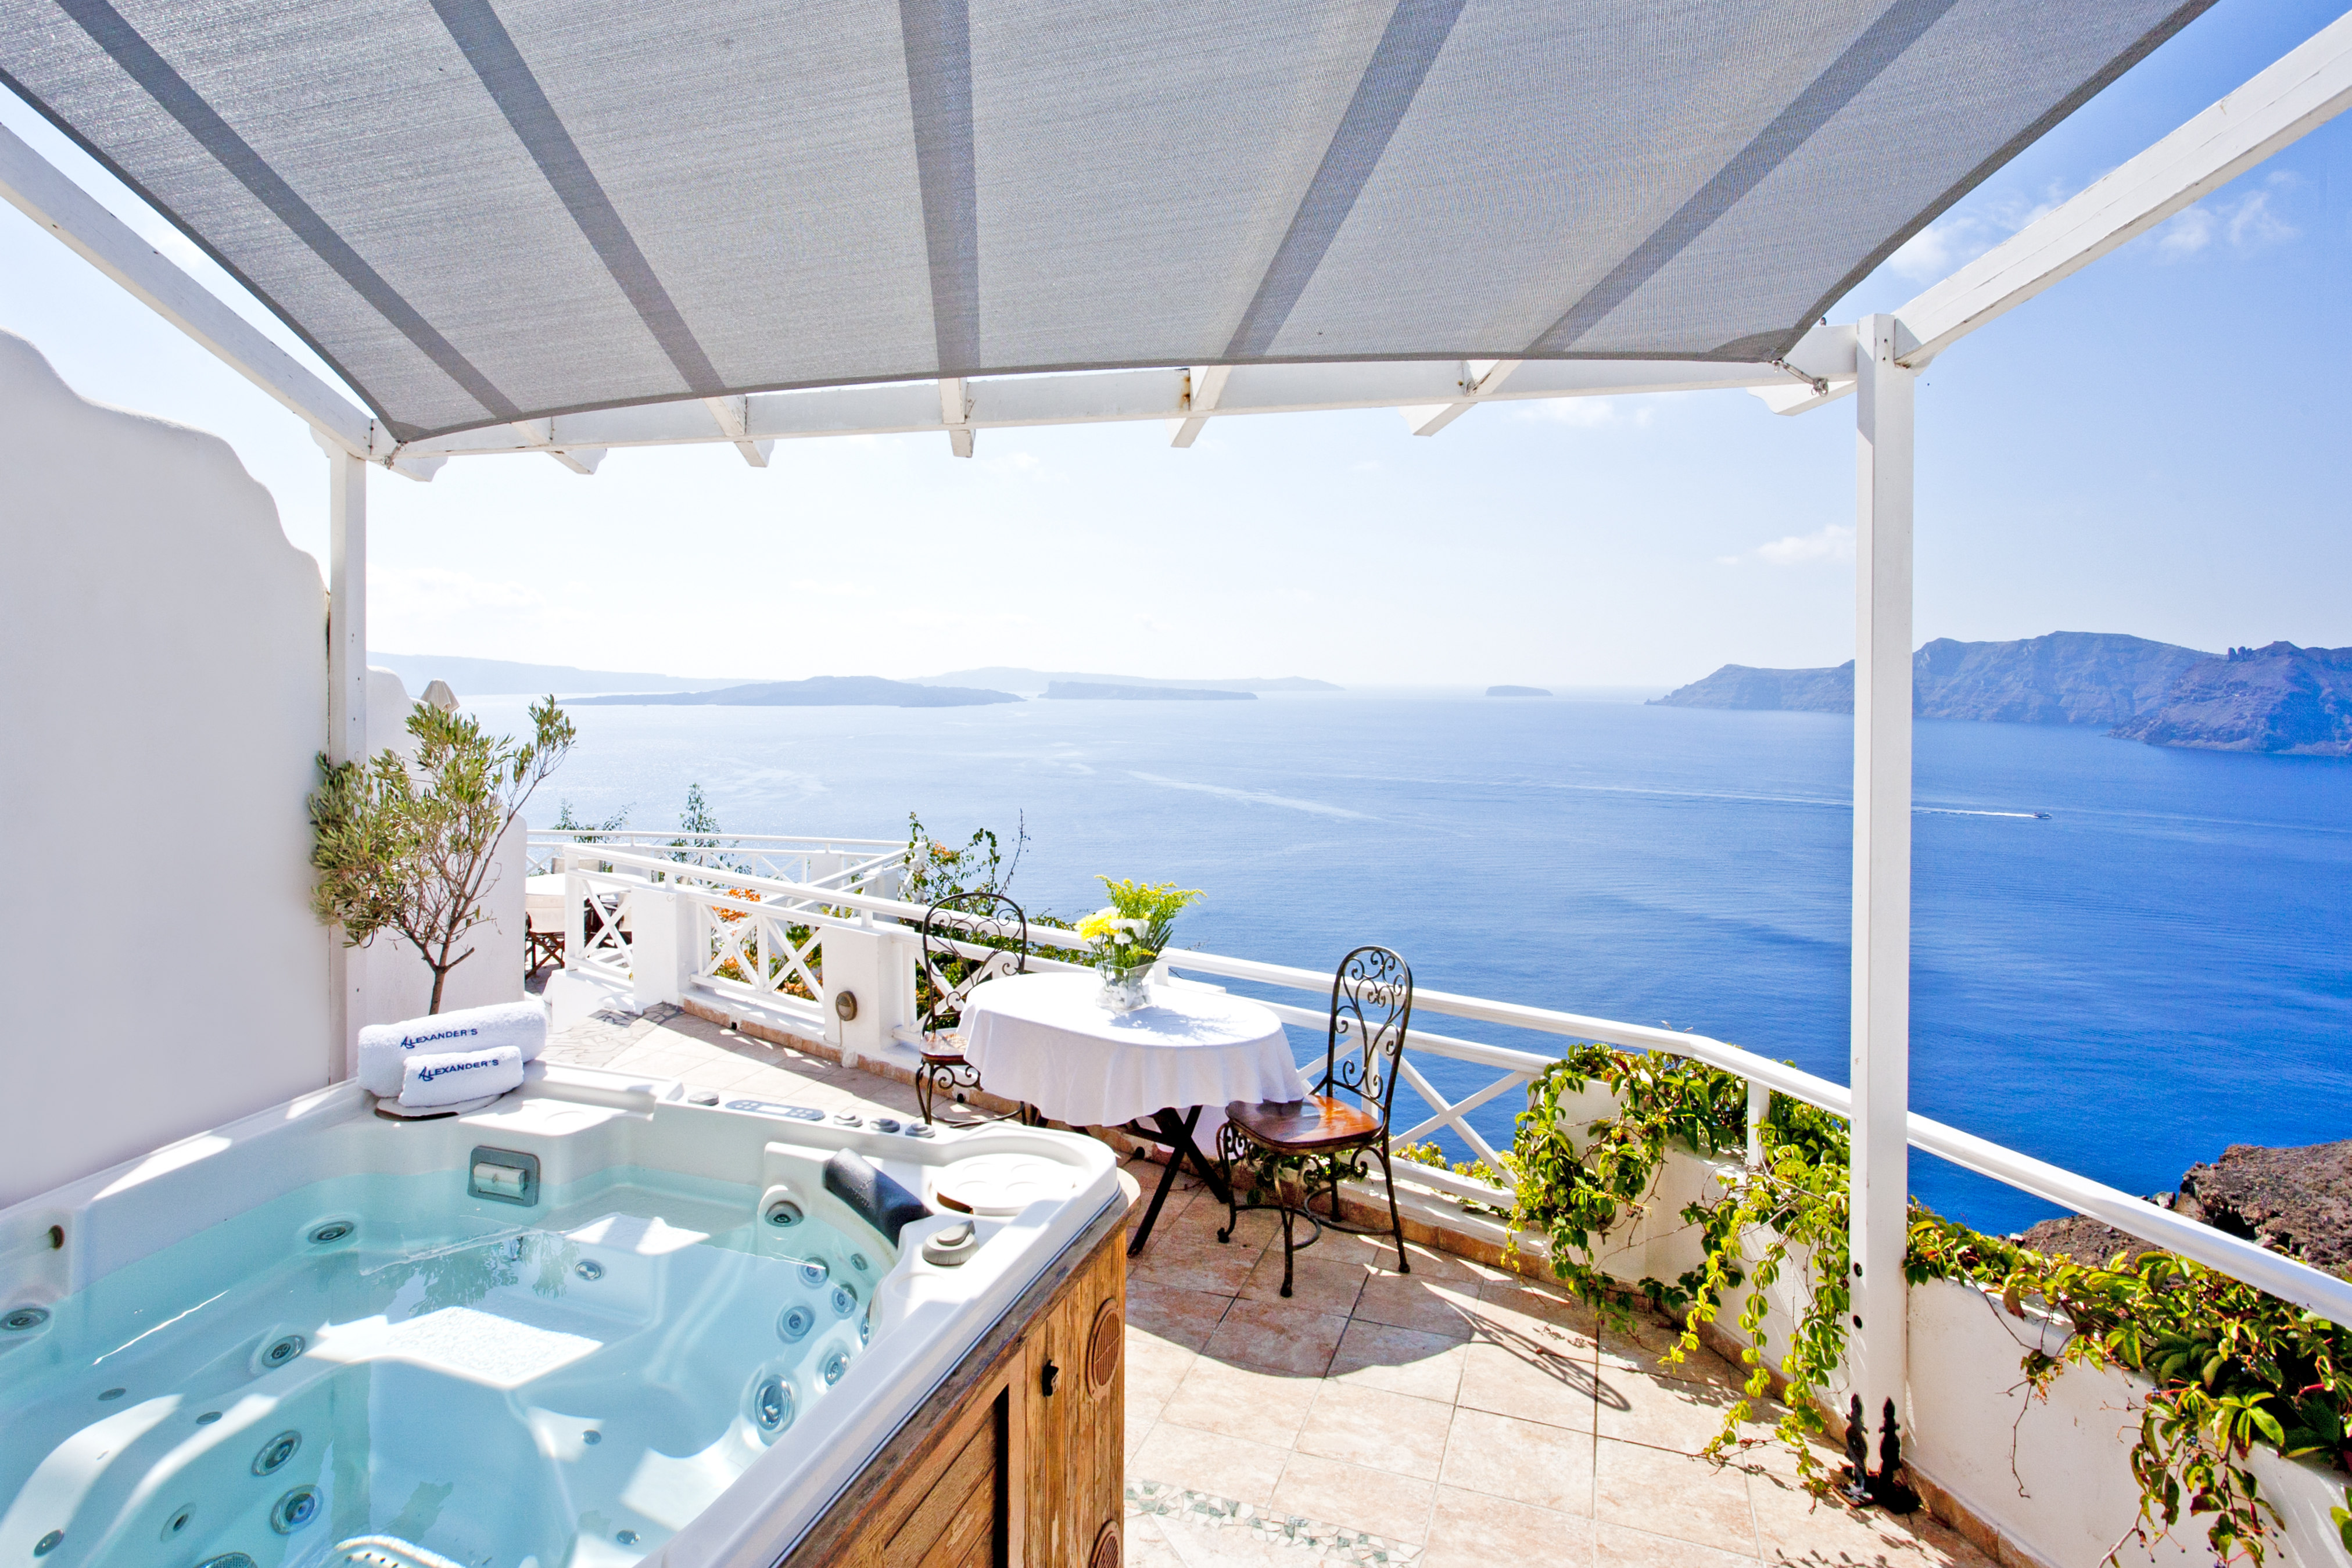 Alexander S Boutique Hotel Of Oia Santorini Luxury Boutique Hotel